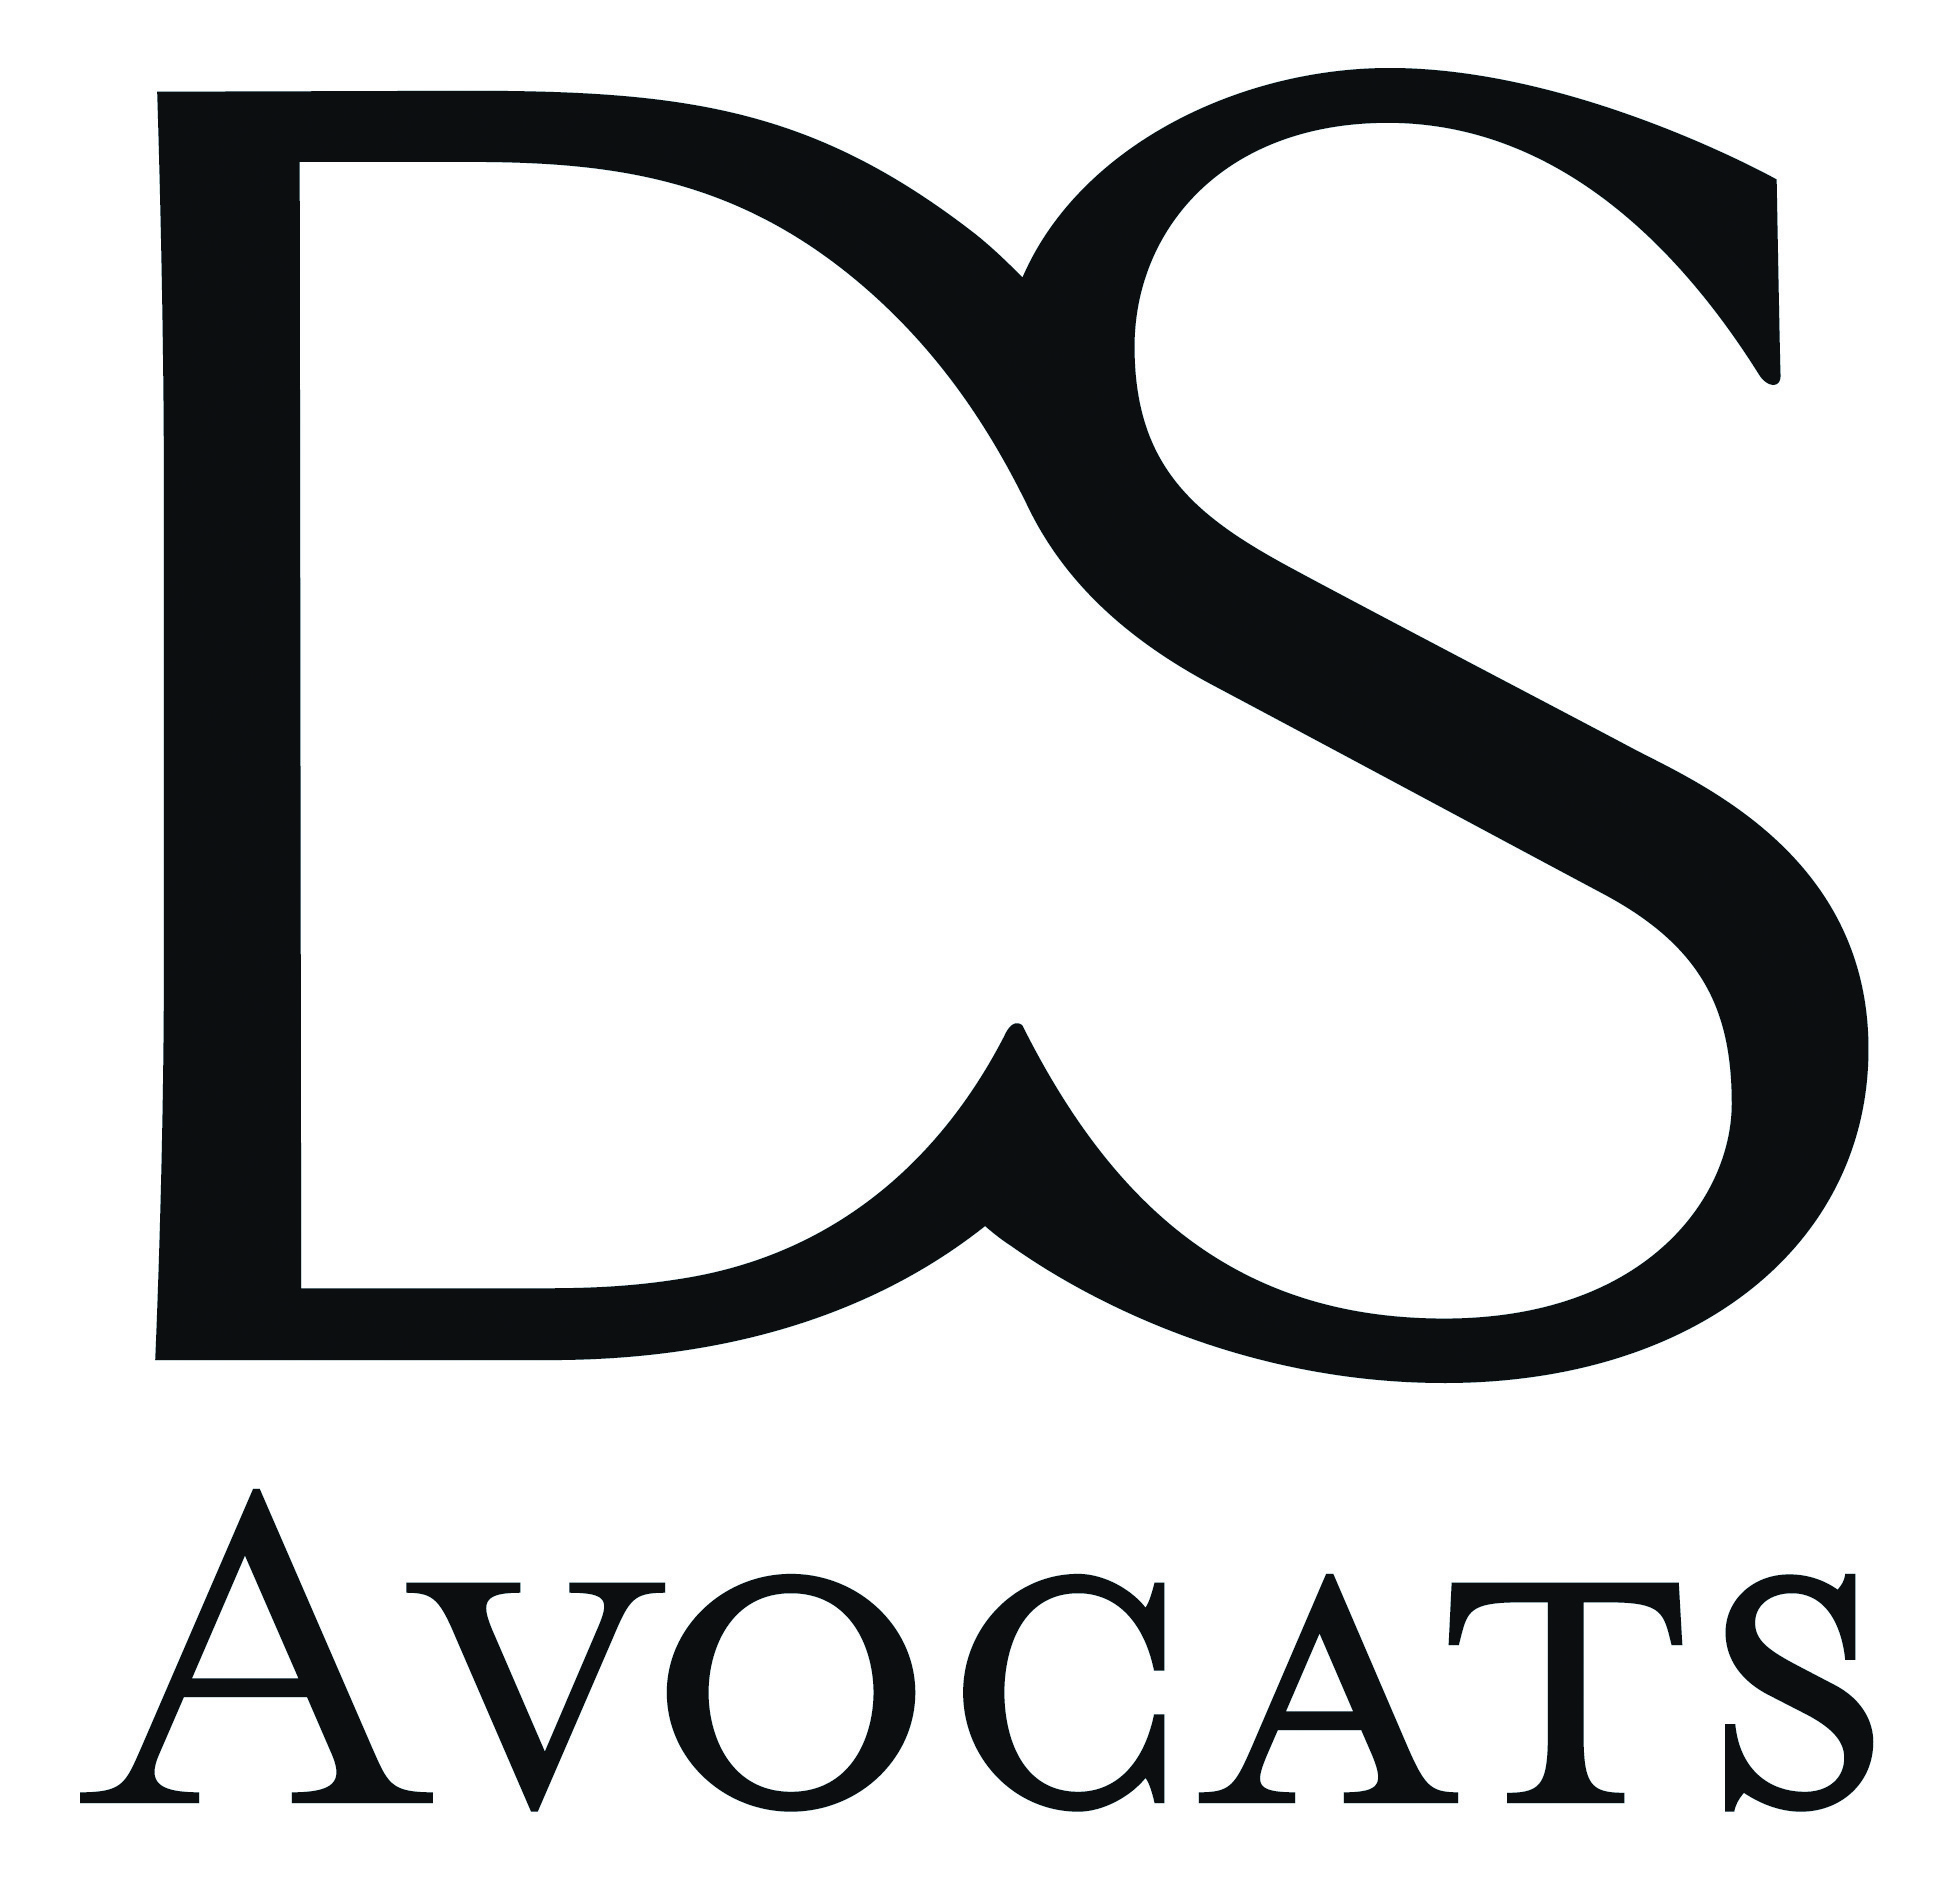 the DS Avocats logo.